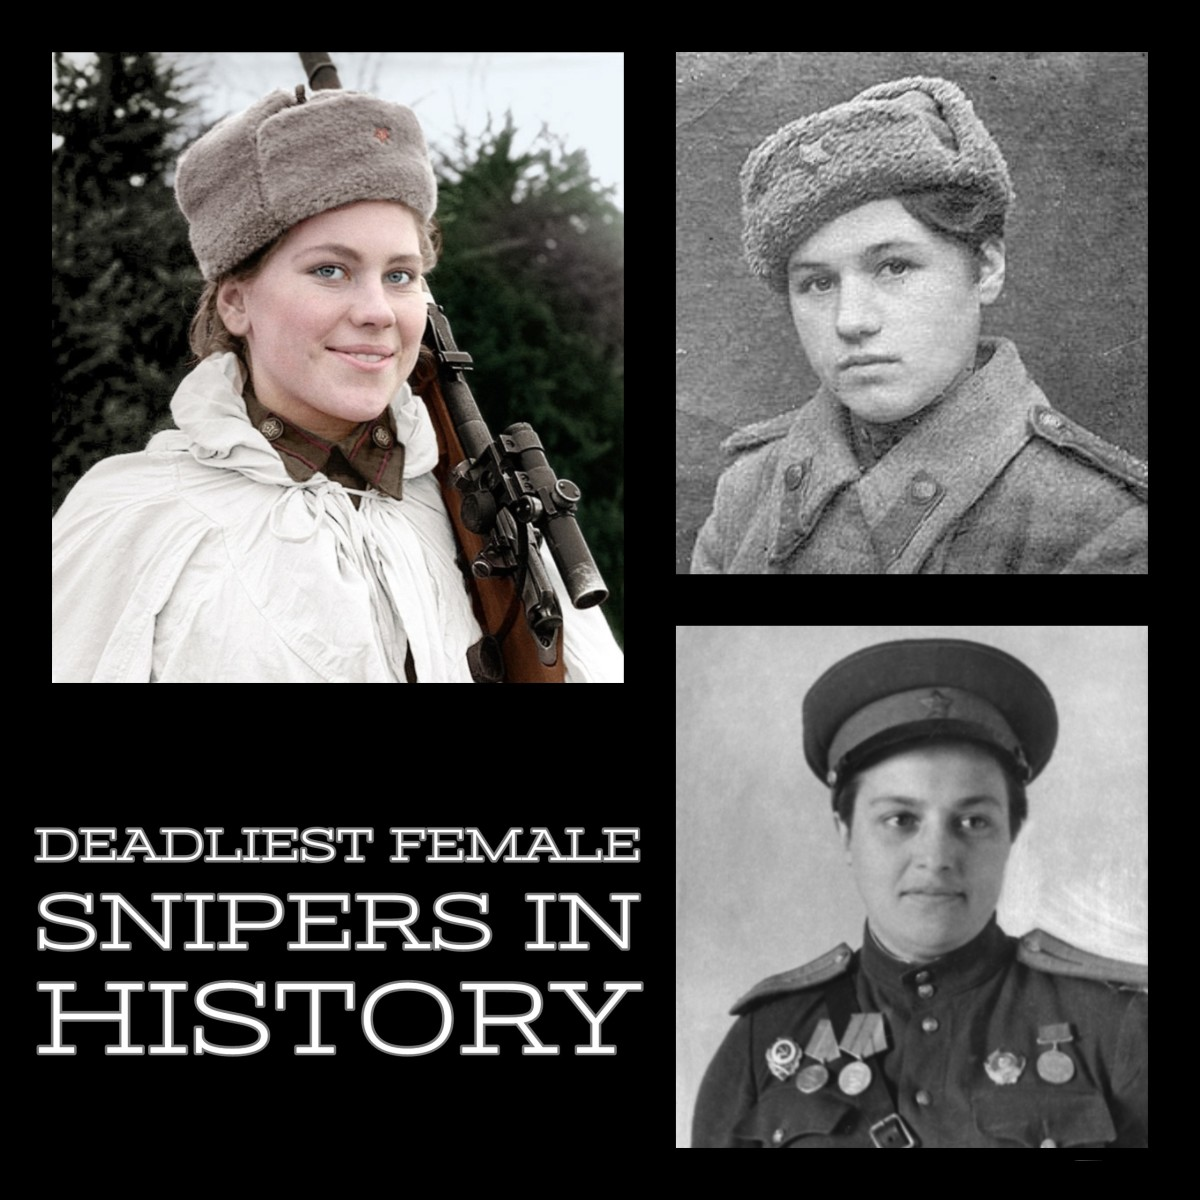 Deadliest female snipers in history.